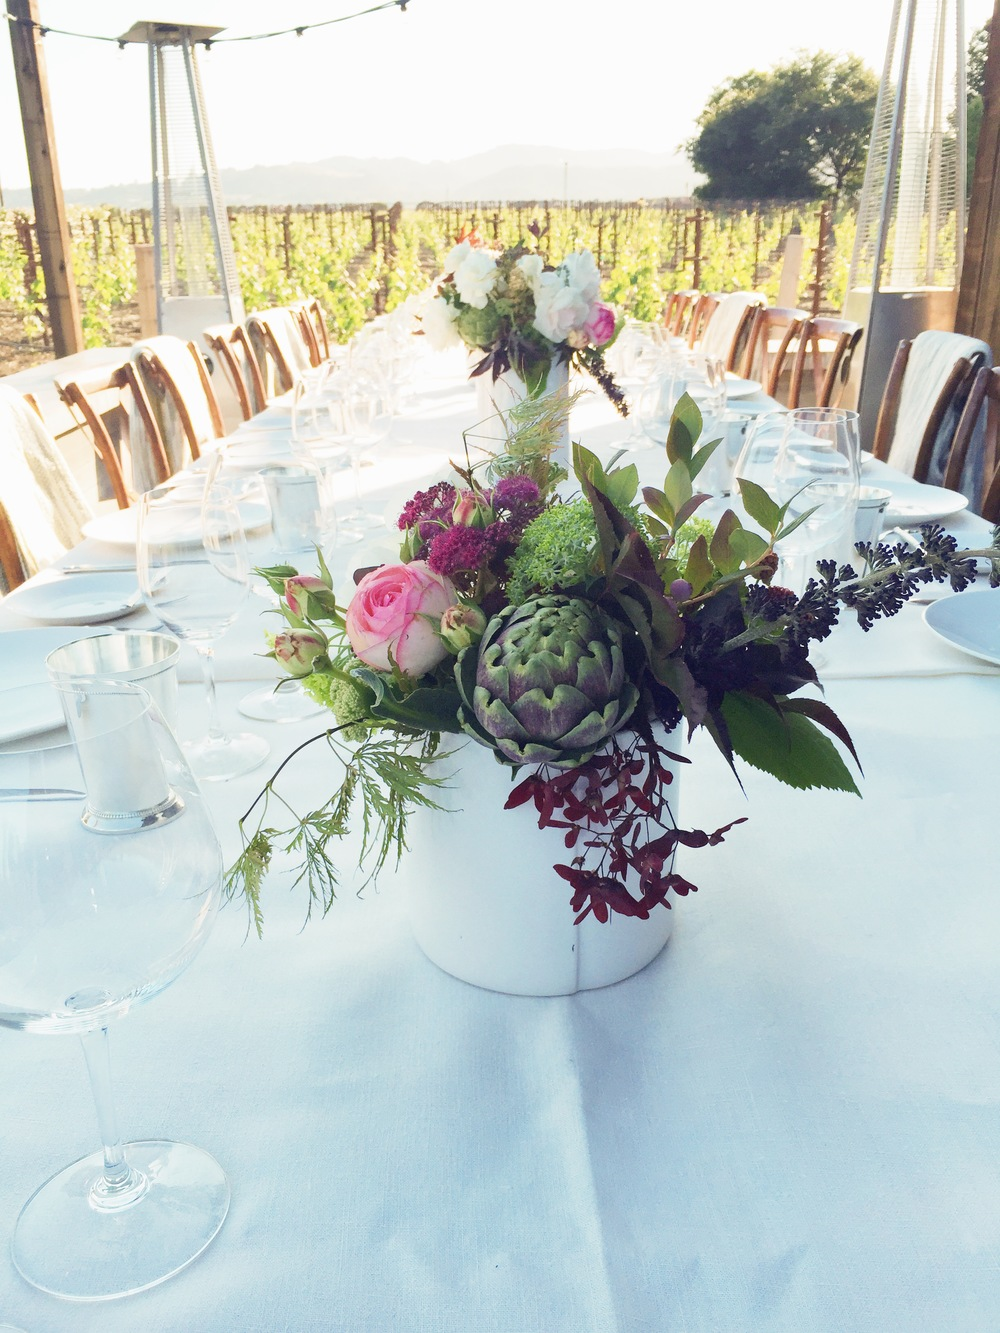 We foraged all the materials for these rehearsal dinner centerpieces from the expansive onsite garden. Need less to say, we fell in love with this venue! Event: Rehearsal Dinner, Private Estate, Napa, CA